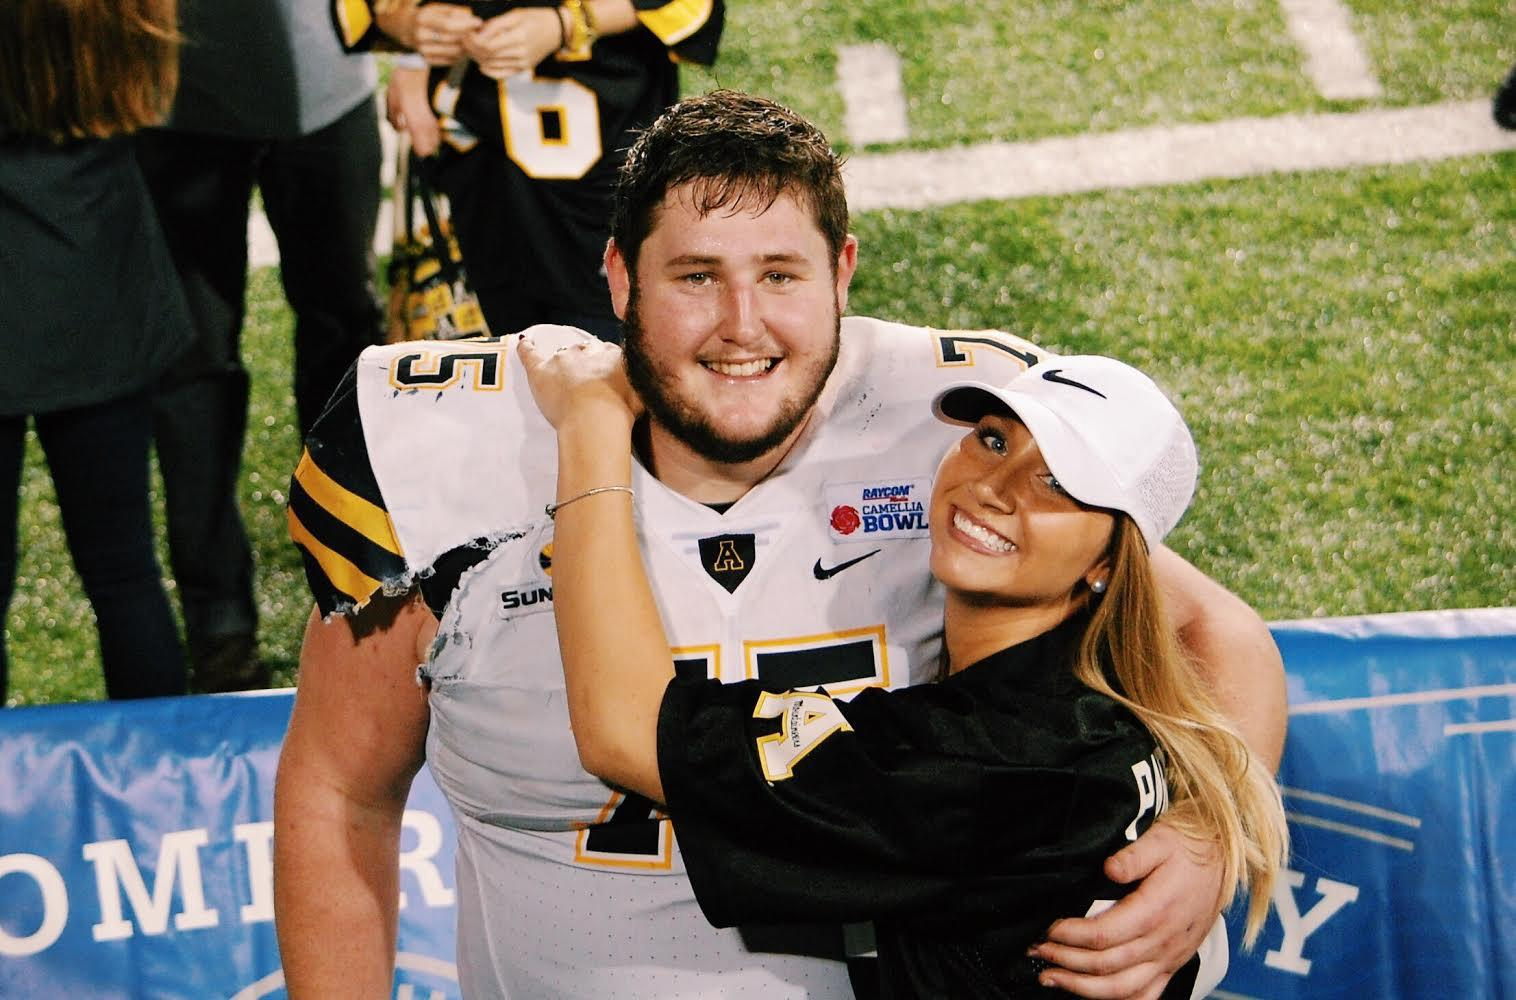 Katie Doge, founder of G7AMEDAY5, posing with Parker Collins, former App State football player. Dodge said Collins was her inspiration to create her clothing brand that features customized App State spirit wear.